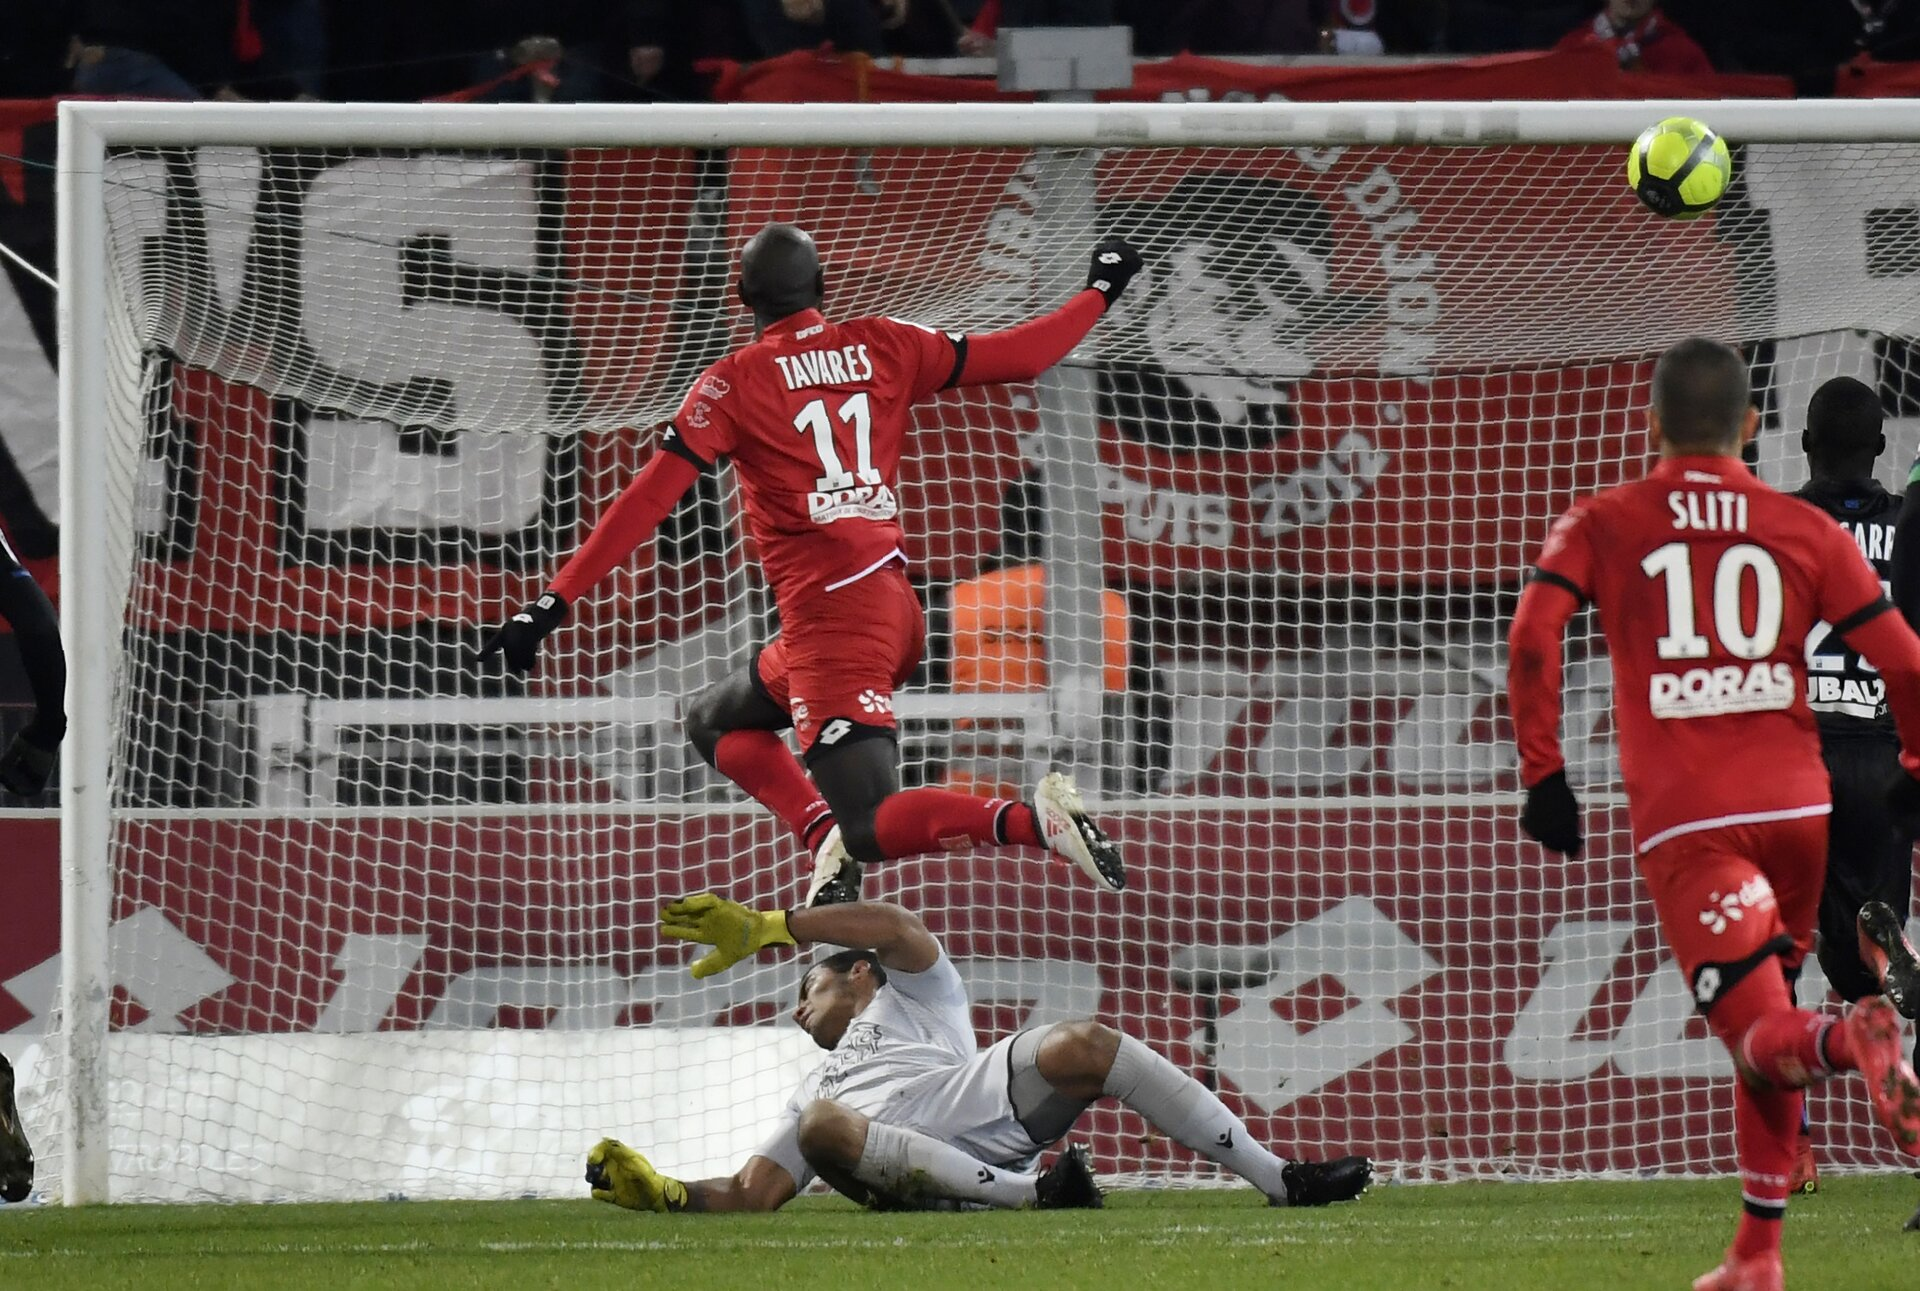 Dijon's Cap Verdean forward Julio Tavares (top) shoots to score a goal during the French L1 football match between Dijon FCO and OGC Nice on February 10, 2018 at the Gaston Gerard stadium in Dijon, central-eastern France.   Dijon's Cap Verde forward Julio Tavares (up) vies with Nice's Argentinian goalkeeper Walter Benitez (down) / AFP PHOTO / PHILIPPE DESMAZES        (Photo credit should read PHILIPPE DESMAZES/AFP/Getty Images)